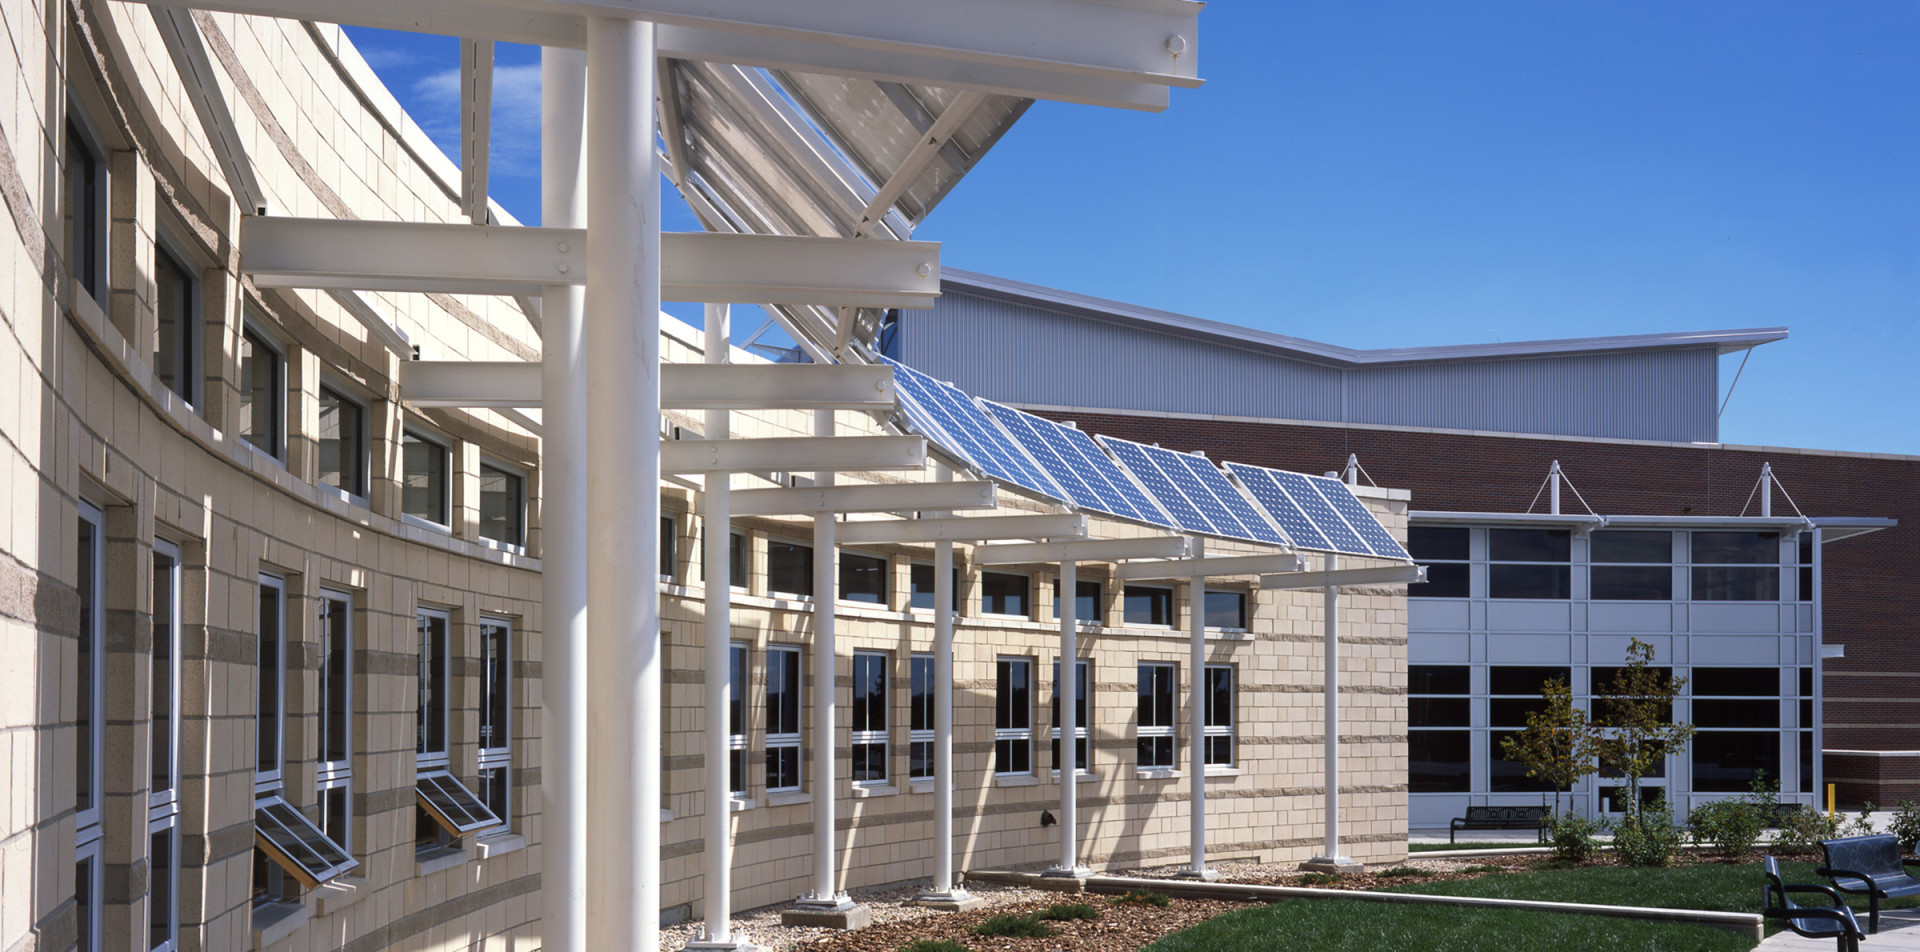 Csu Researchers To Study Effects Of Green Schools